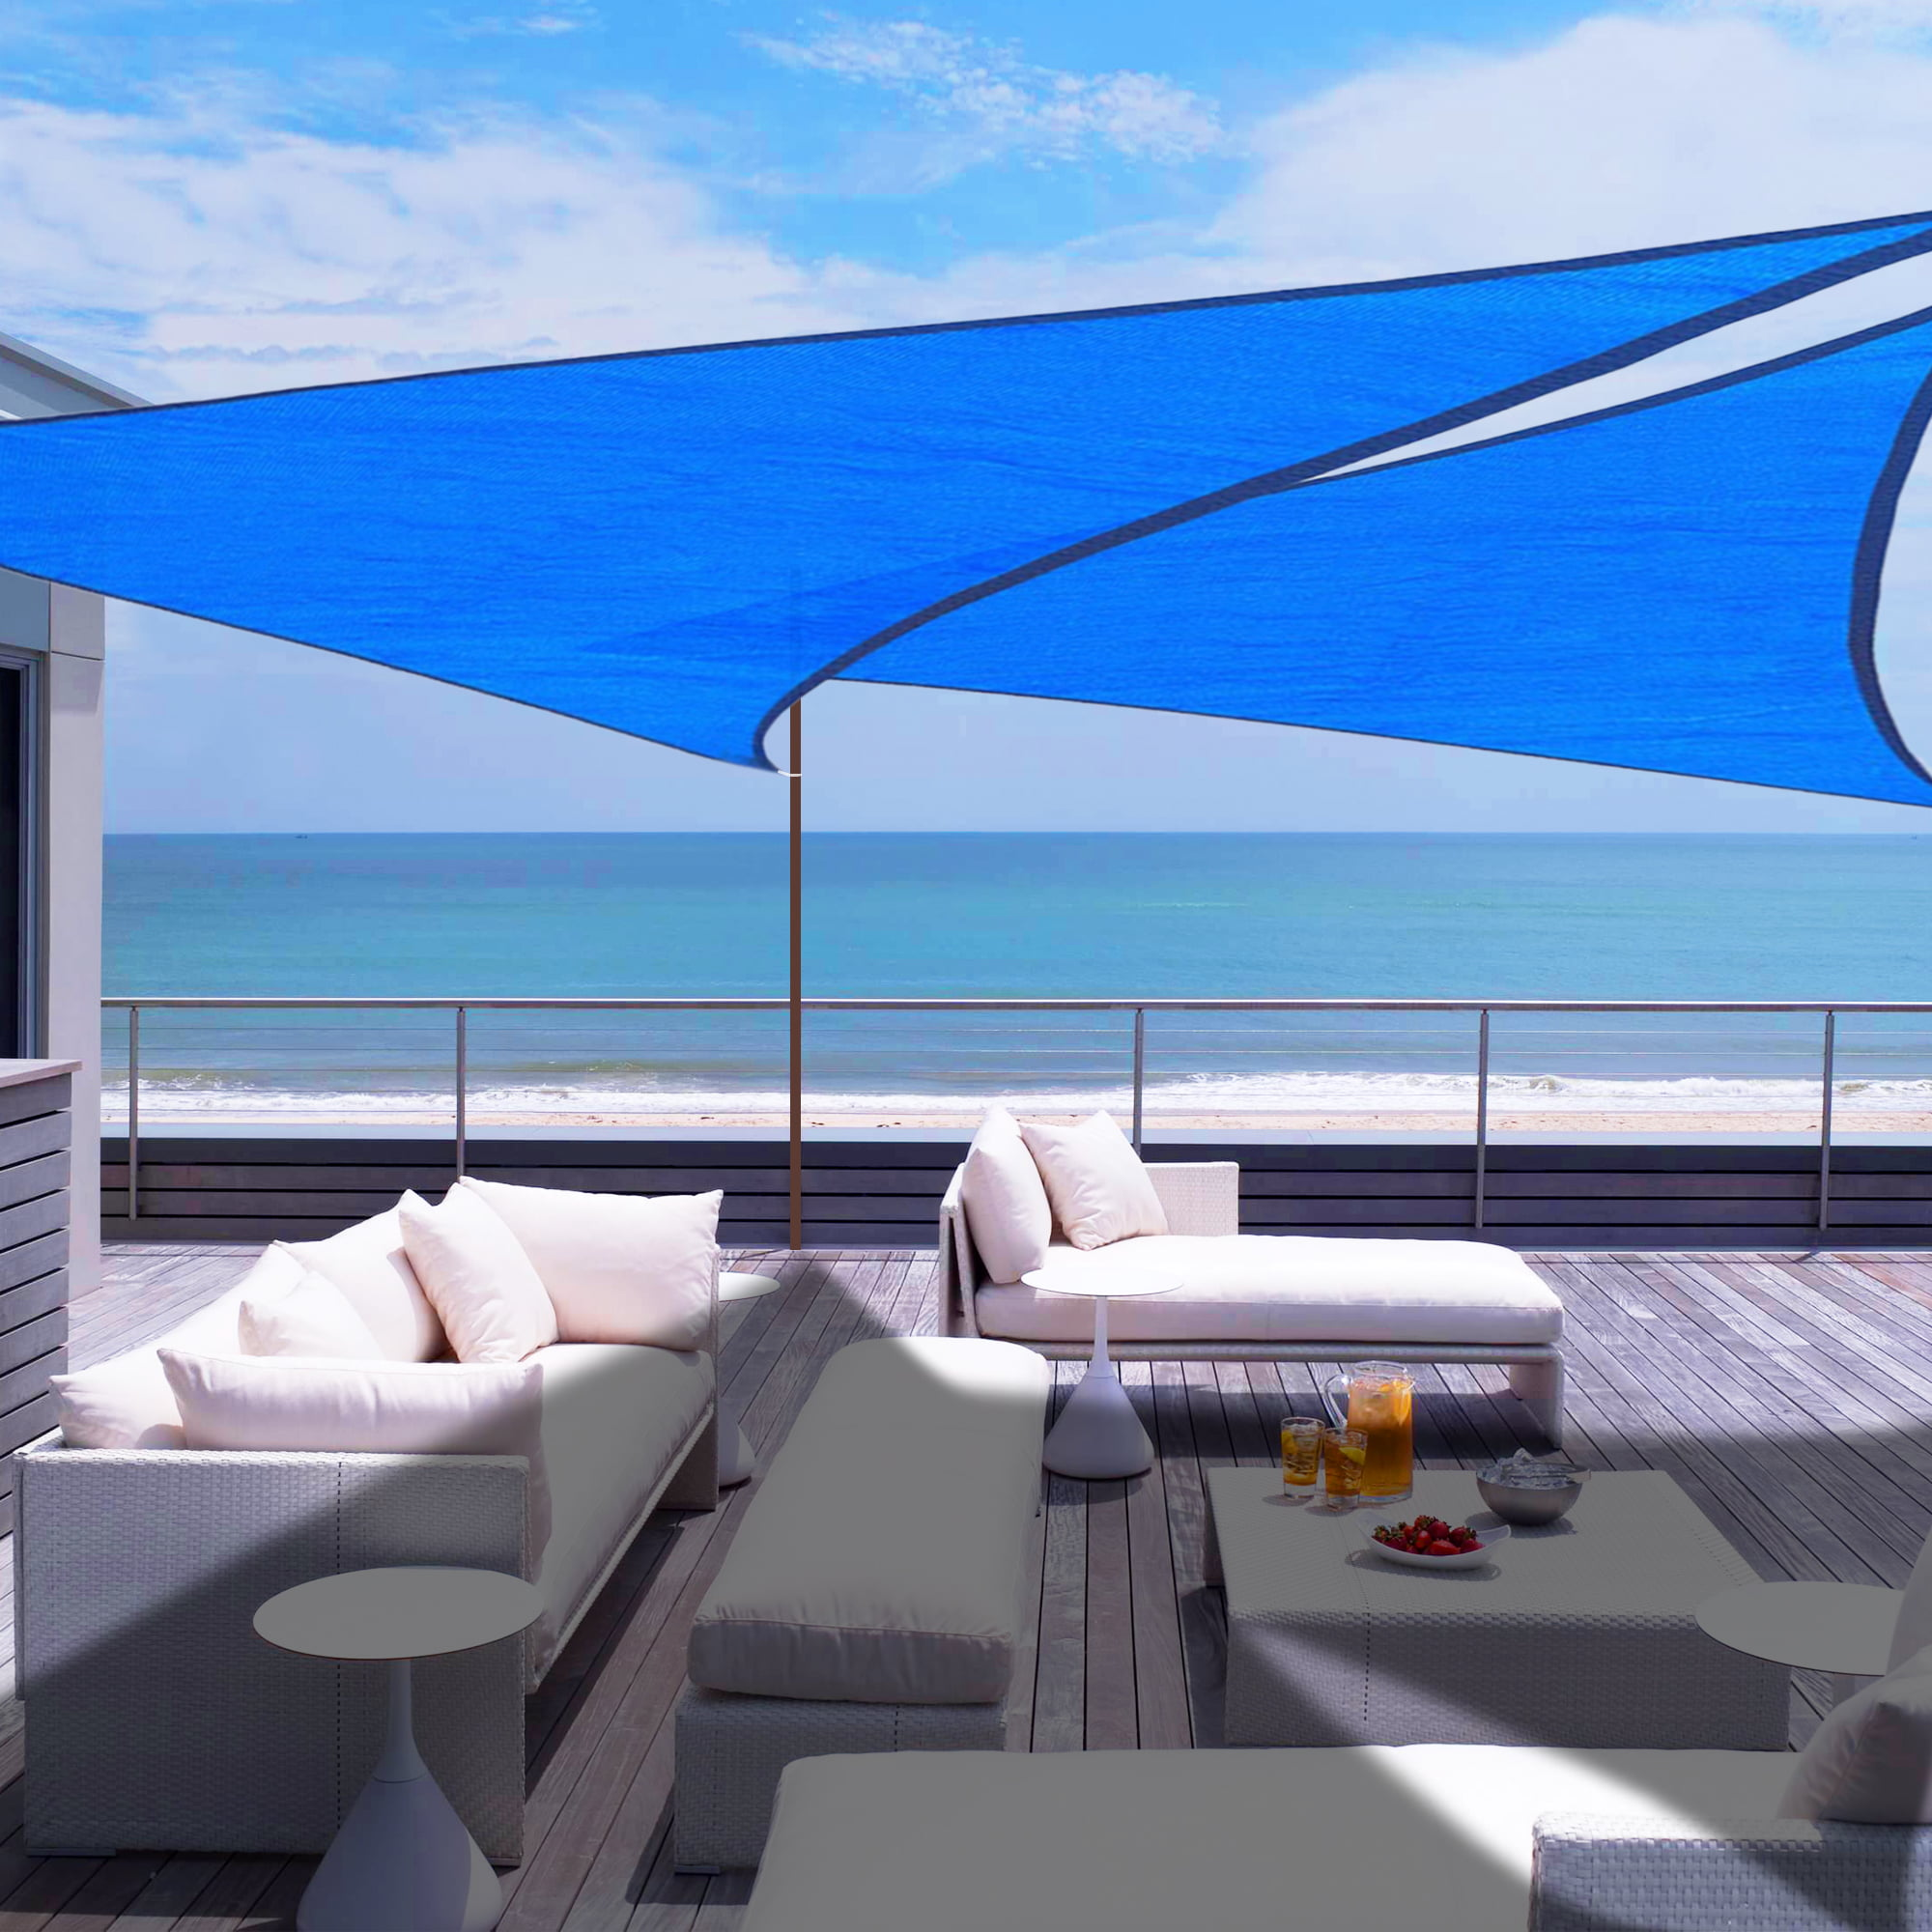 Be Cool Solutions 50/% White Outdoor Sun Shade Canopy: UV Protection Shade Cloth| Lightweight Patio /& Porch 6x12 Easy Setup Mesh Canopy Cover with Grommets| Sturdy Durable Shade Fabric for Garden